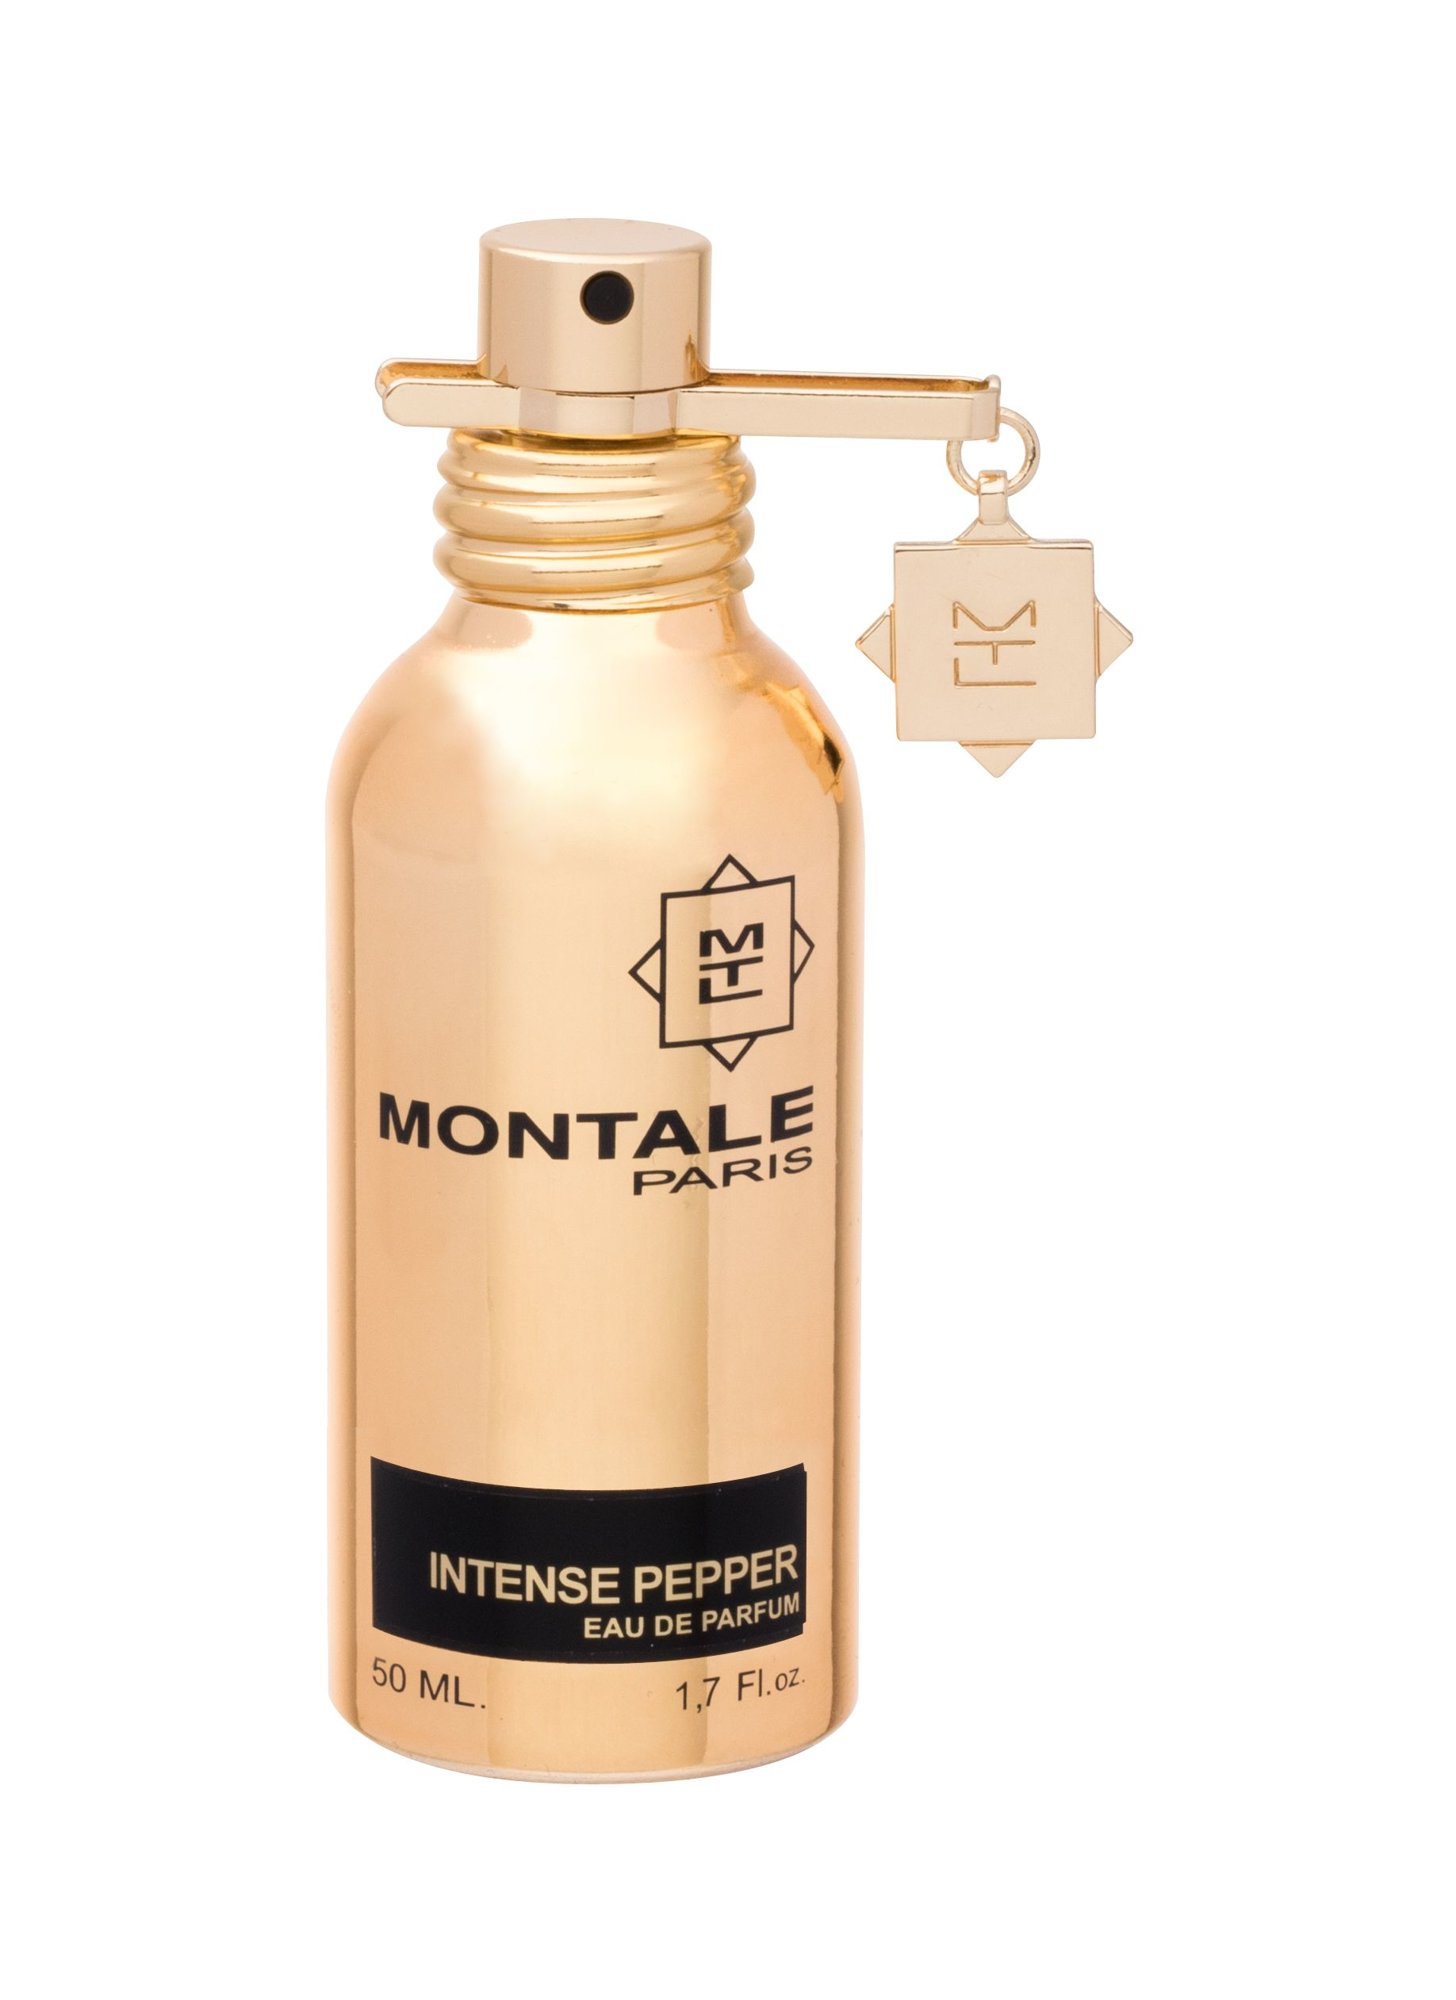 Montale Paris Intense Pepper EDP 50ml